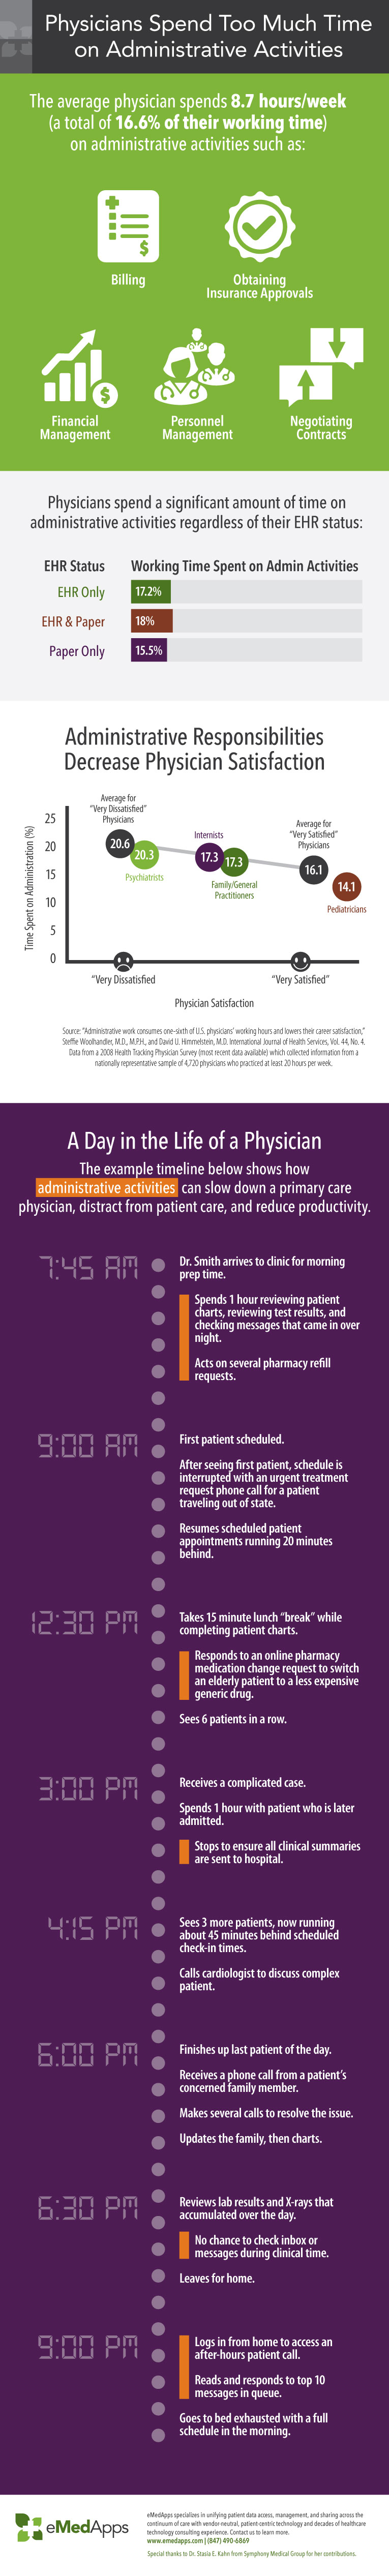 Physicians Spend Too Much Time on Administrative Activities